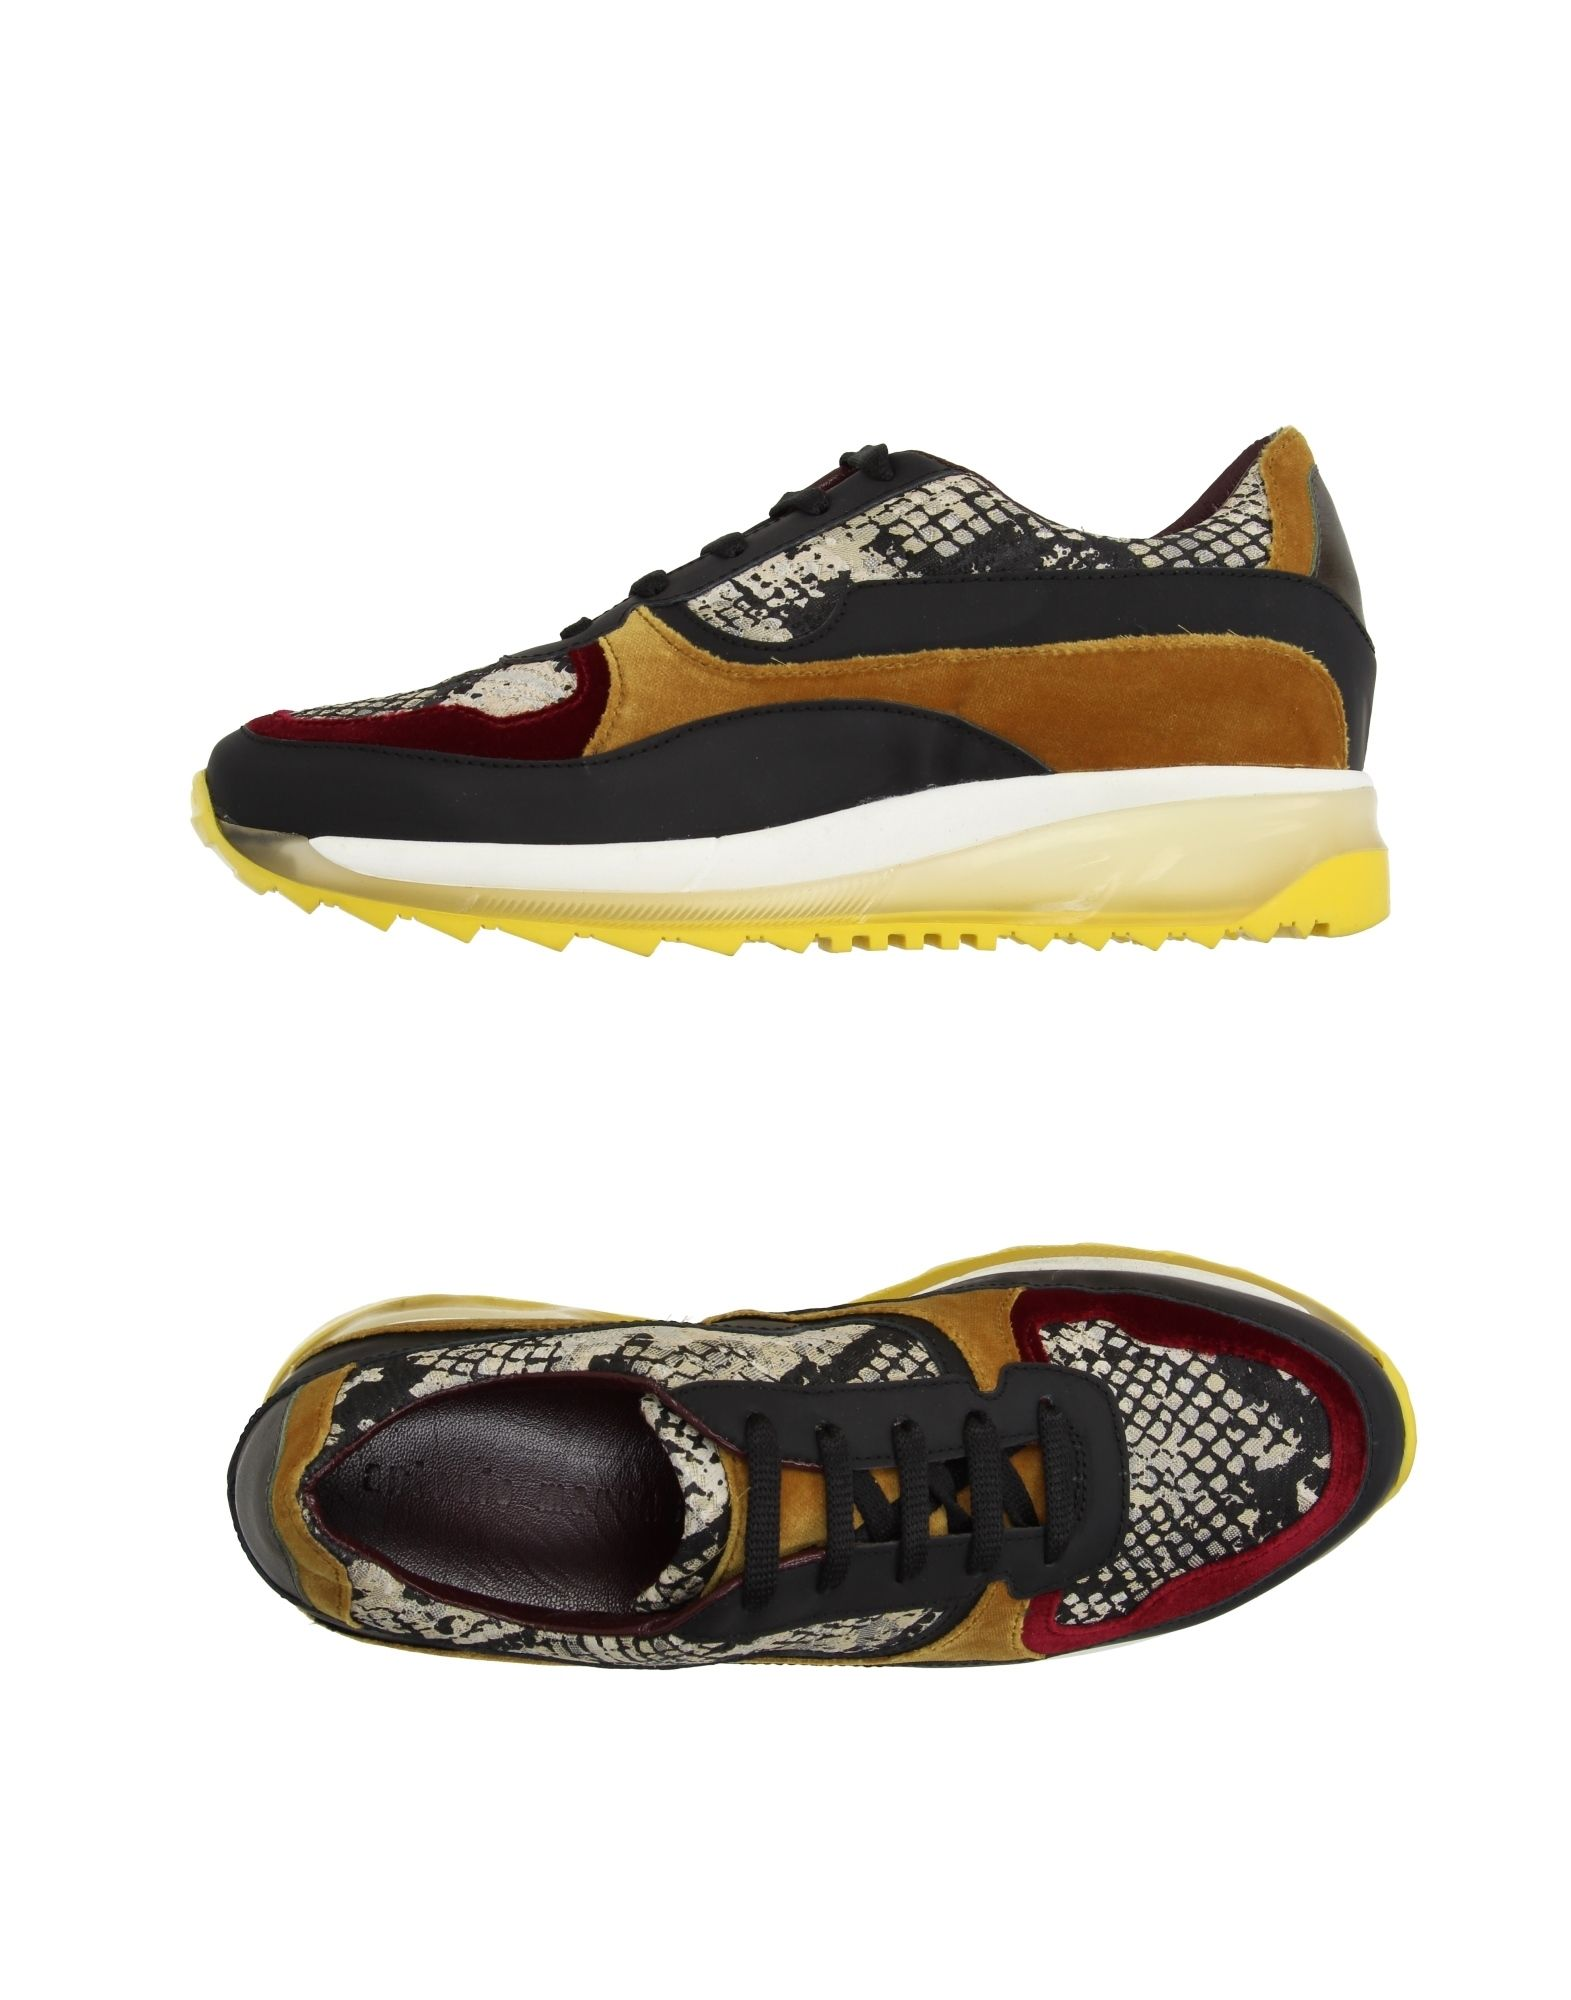 Sneakers Antonio Marras Femme - Sneakers Antonio Marras sur